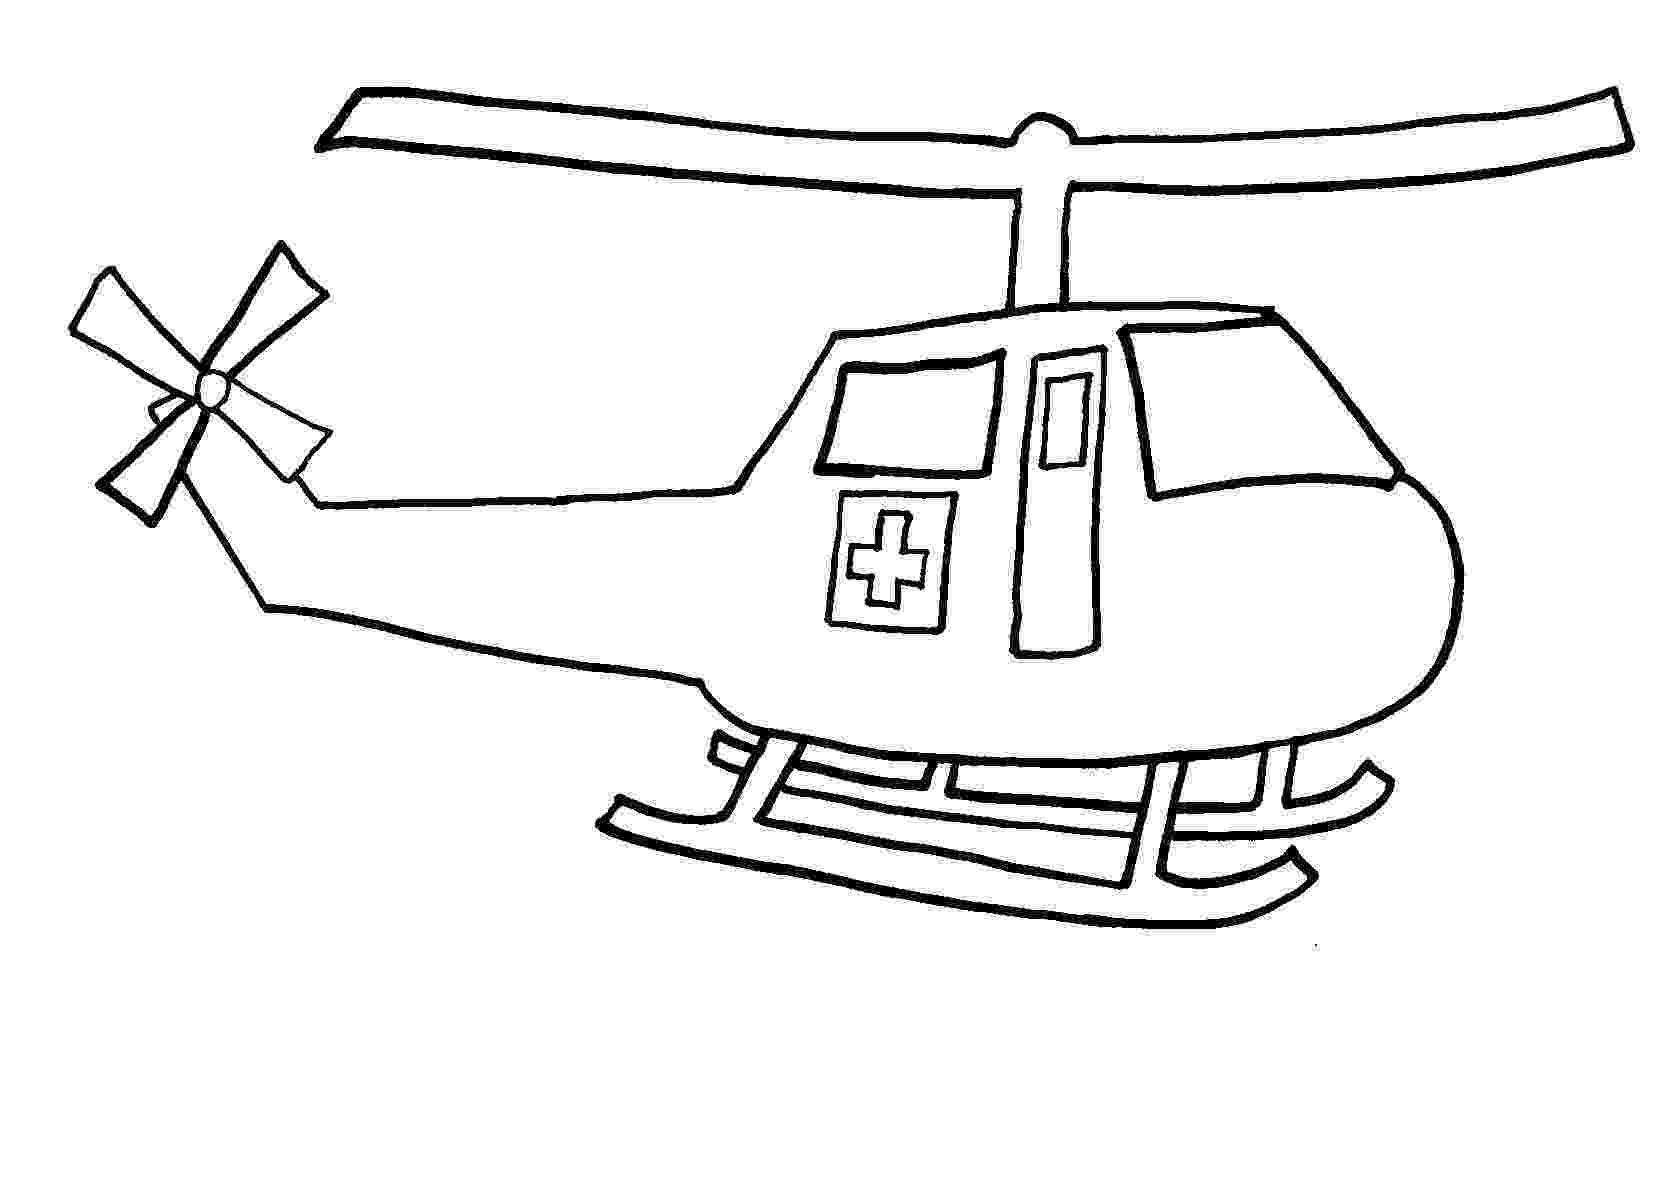 helicopter colouring free printable helicopter coloring pages for kids colouring helicopter 1 1